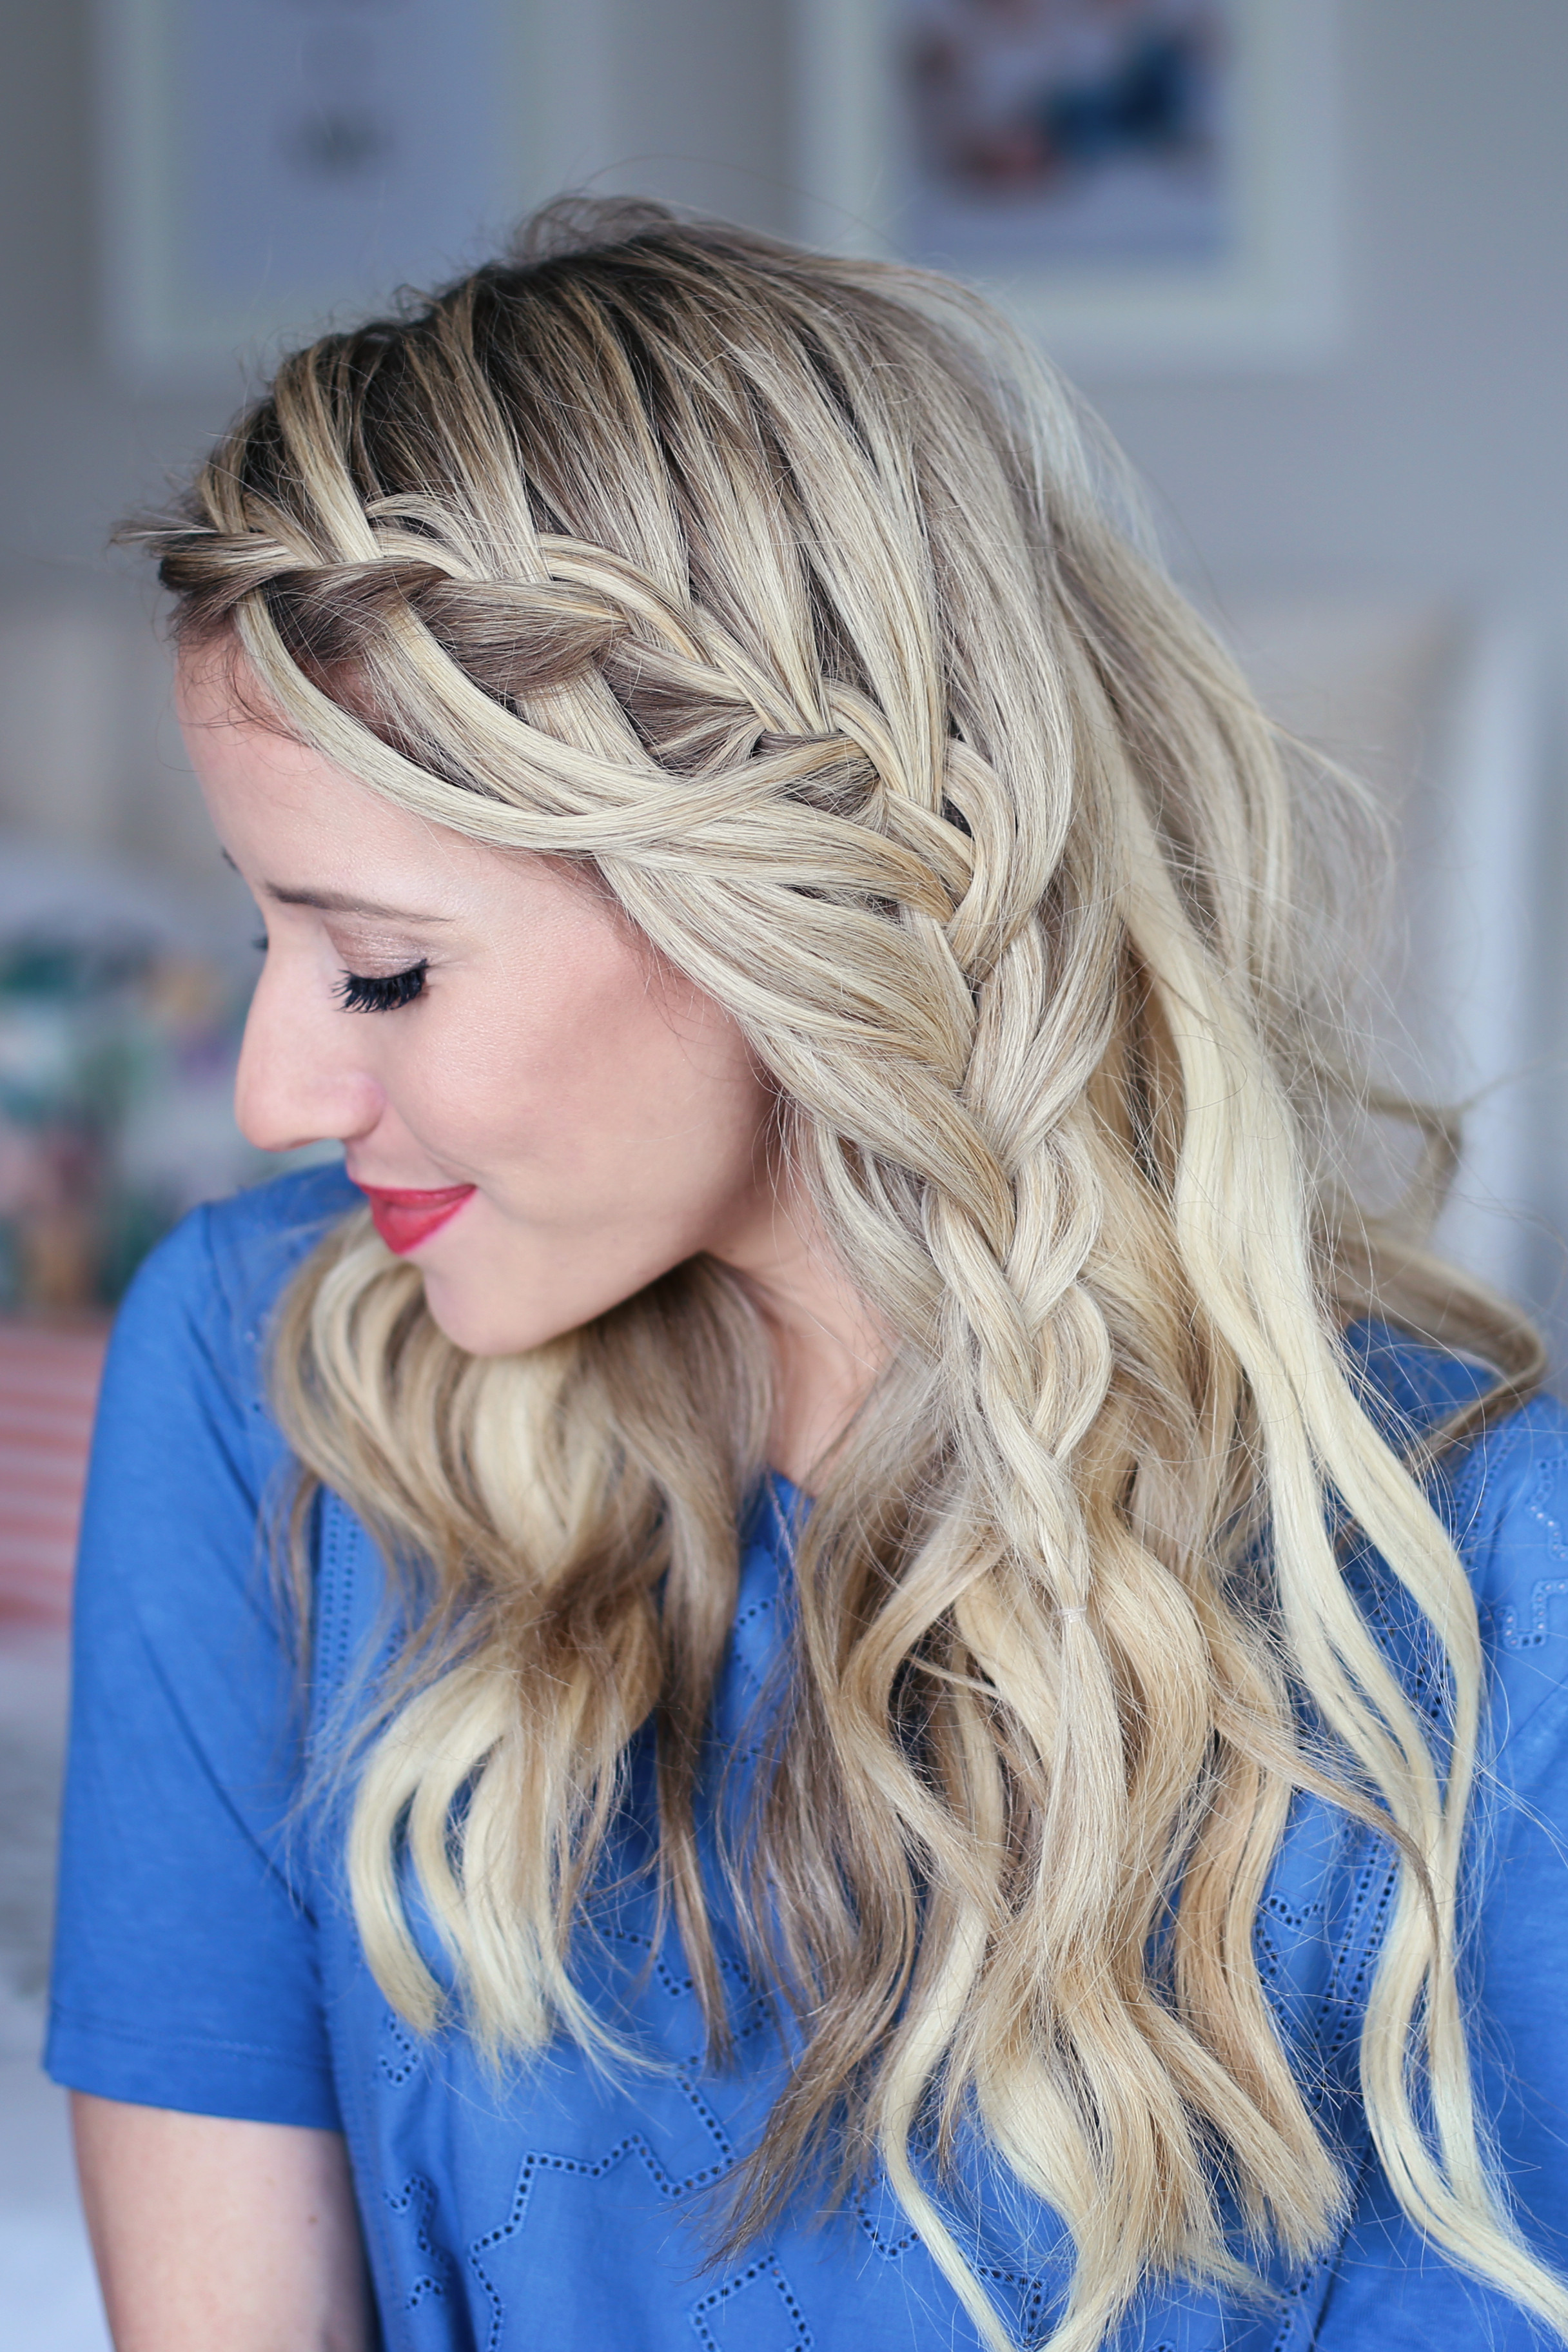 Best ideas about Cute Hairstyles For Women . Save or Pin 3 in 1 Cascading Waterfall Build able Hairstyle Now.